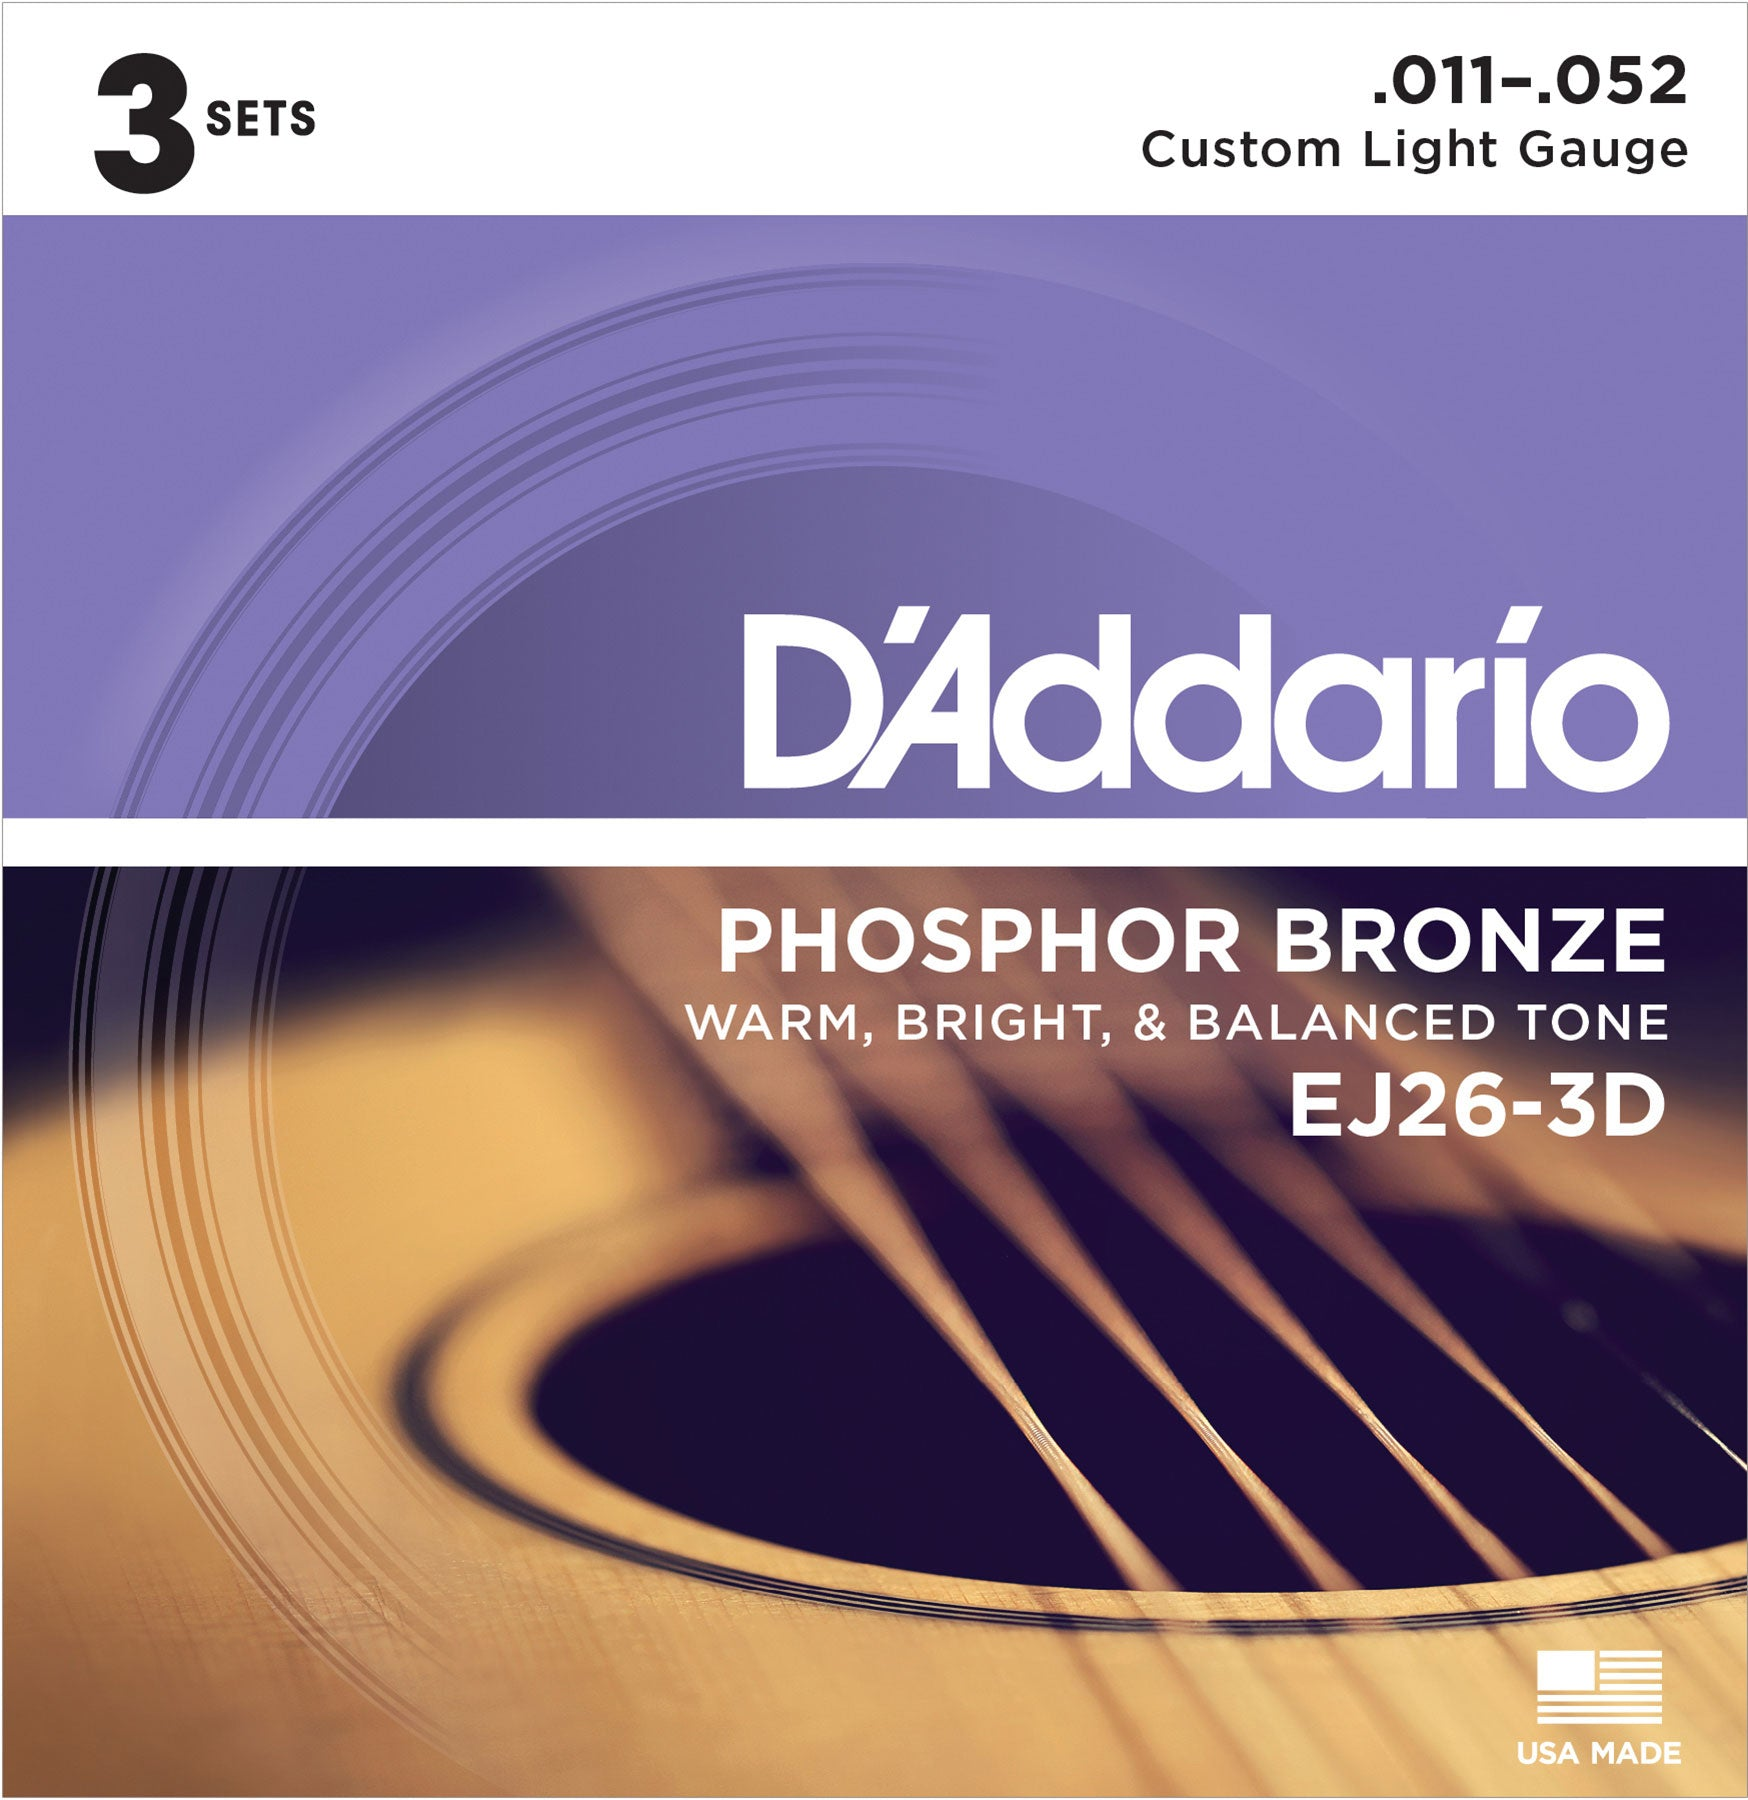 D'ADDARIO PHOSPHOR BRONZE ACOUSTIC GUITAR STRINGS CUSTOM LIGHT .011-.052 3 PACK